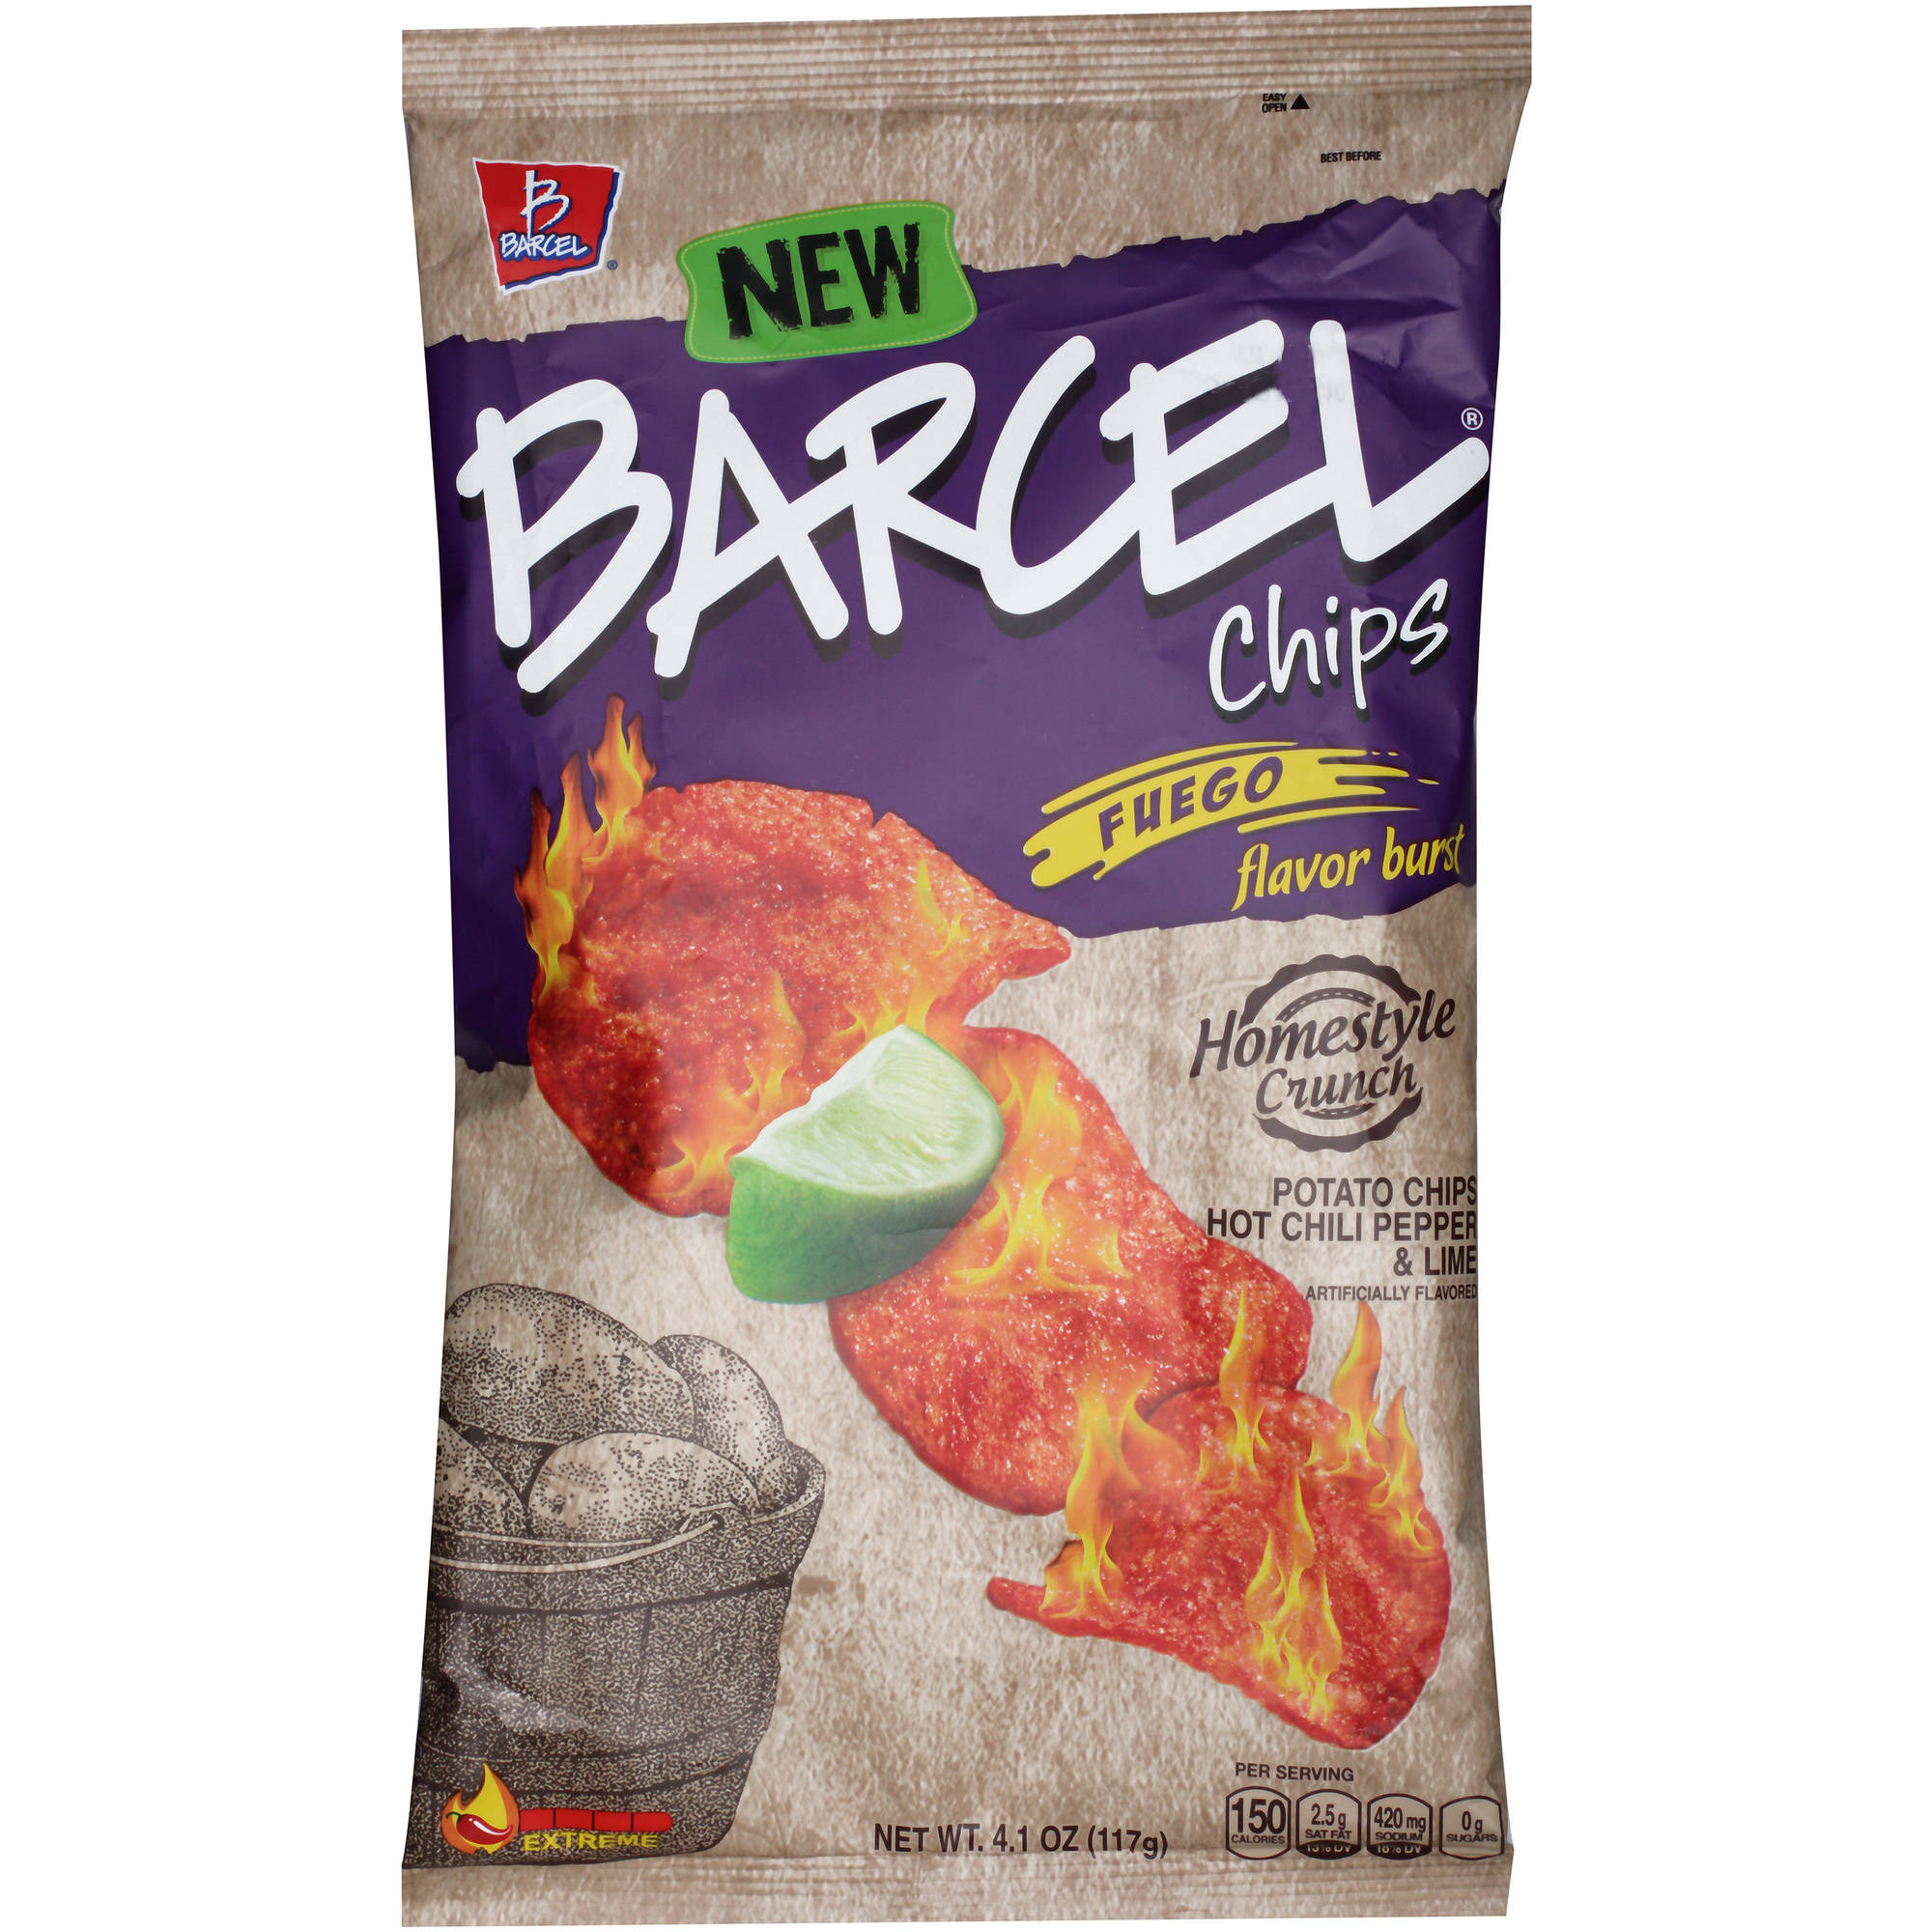 Barcel Fuego Flavor Burst Potato Chips, 4.1 oz by Barcel